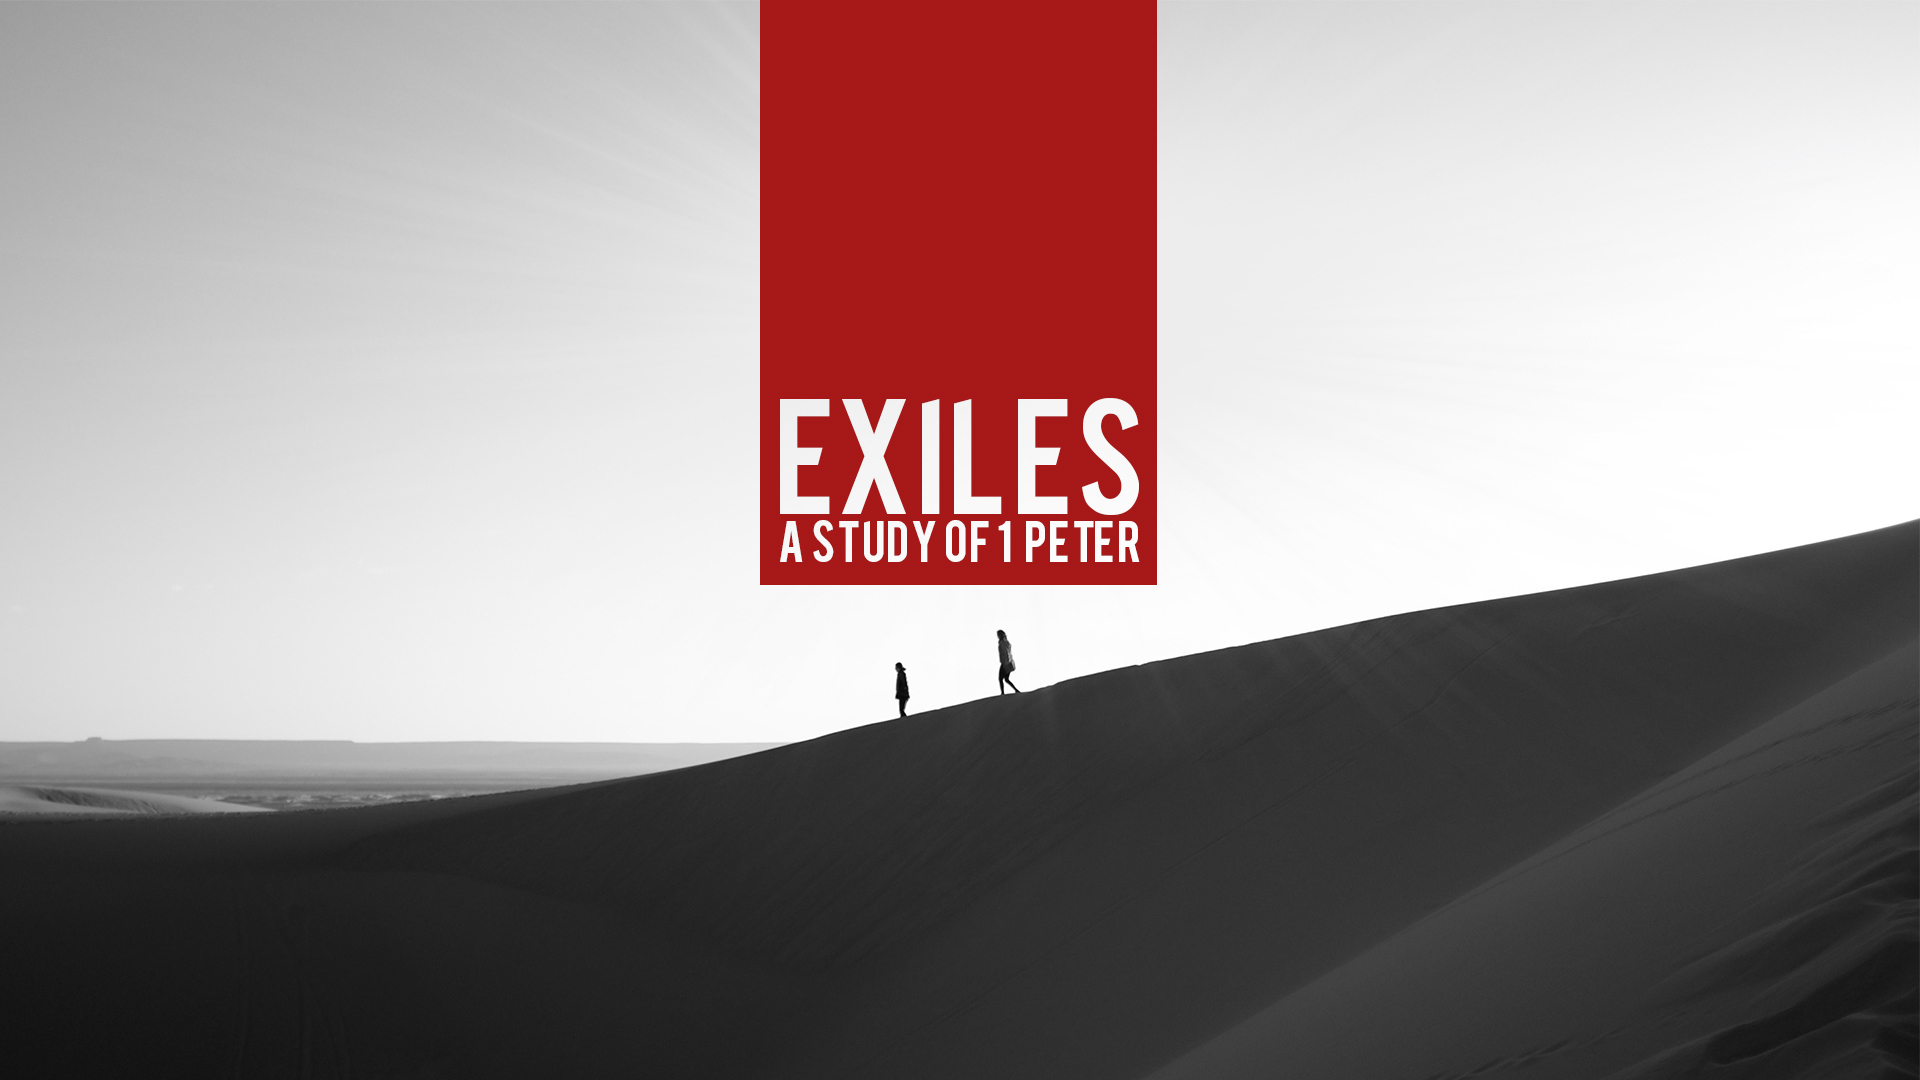 Exiles: A Study of 1 Peter